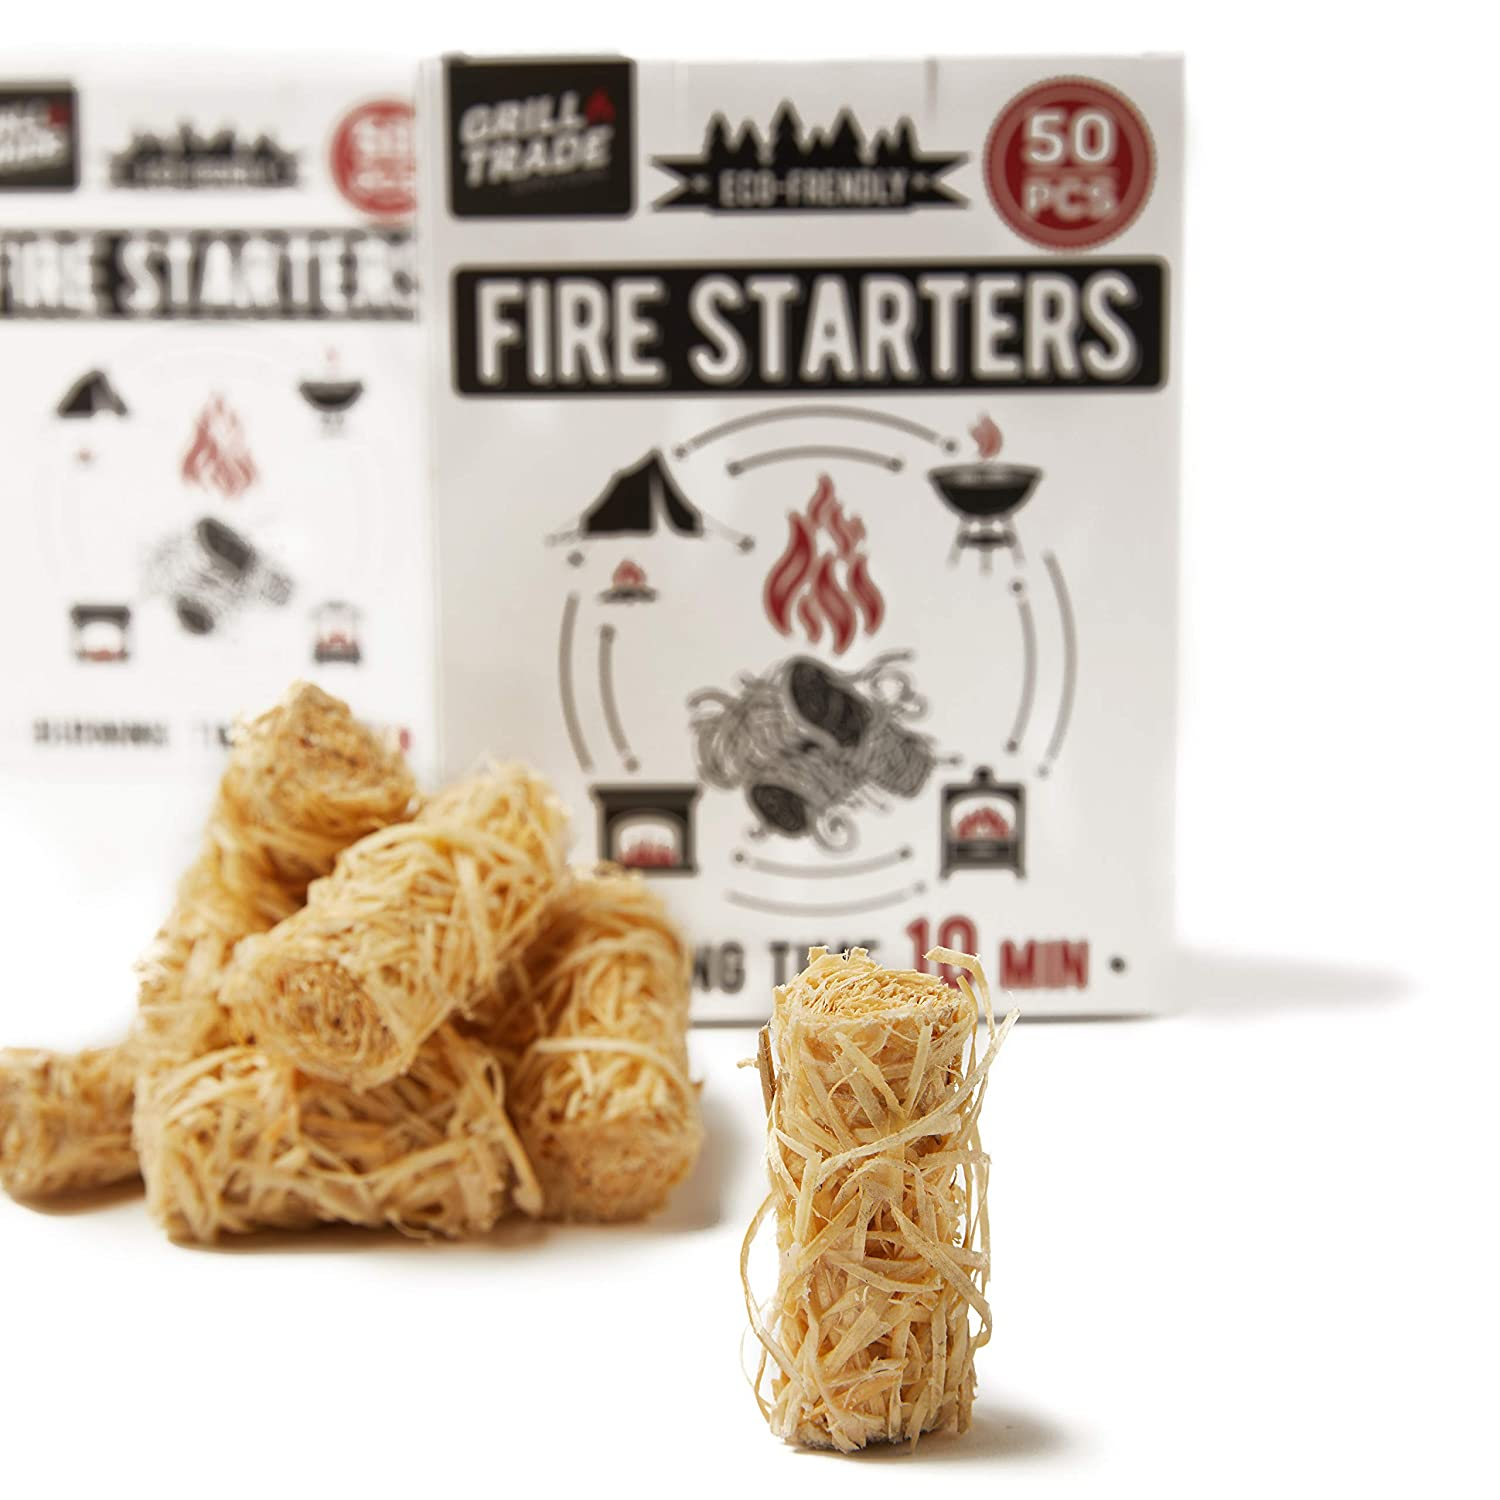 Charcoal Fire Starters (50 Count) for Webers Green Eggs Kamados And Other Grill Super Fast Lighting 100% All Natural Grill Trade